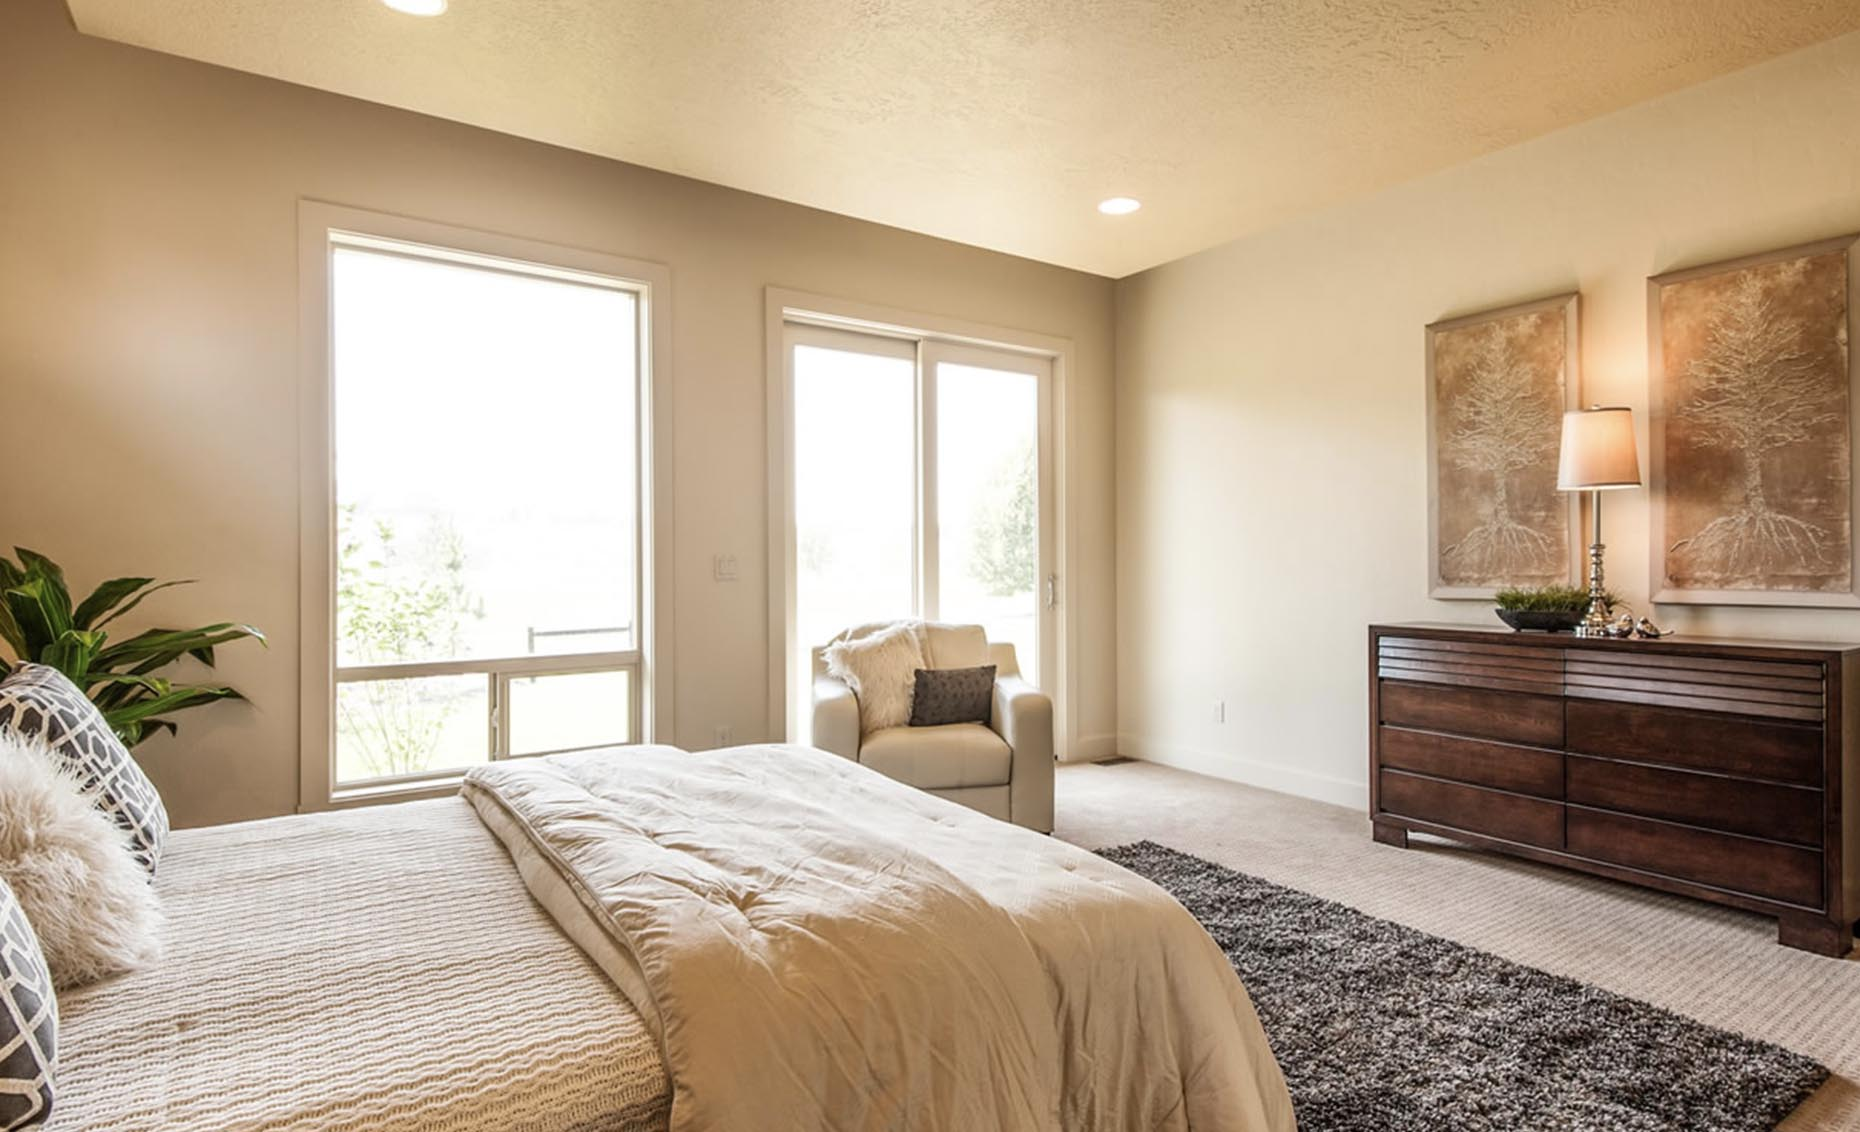 The Contemporary House Guest Bedroom